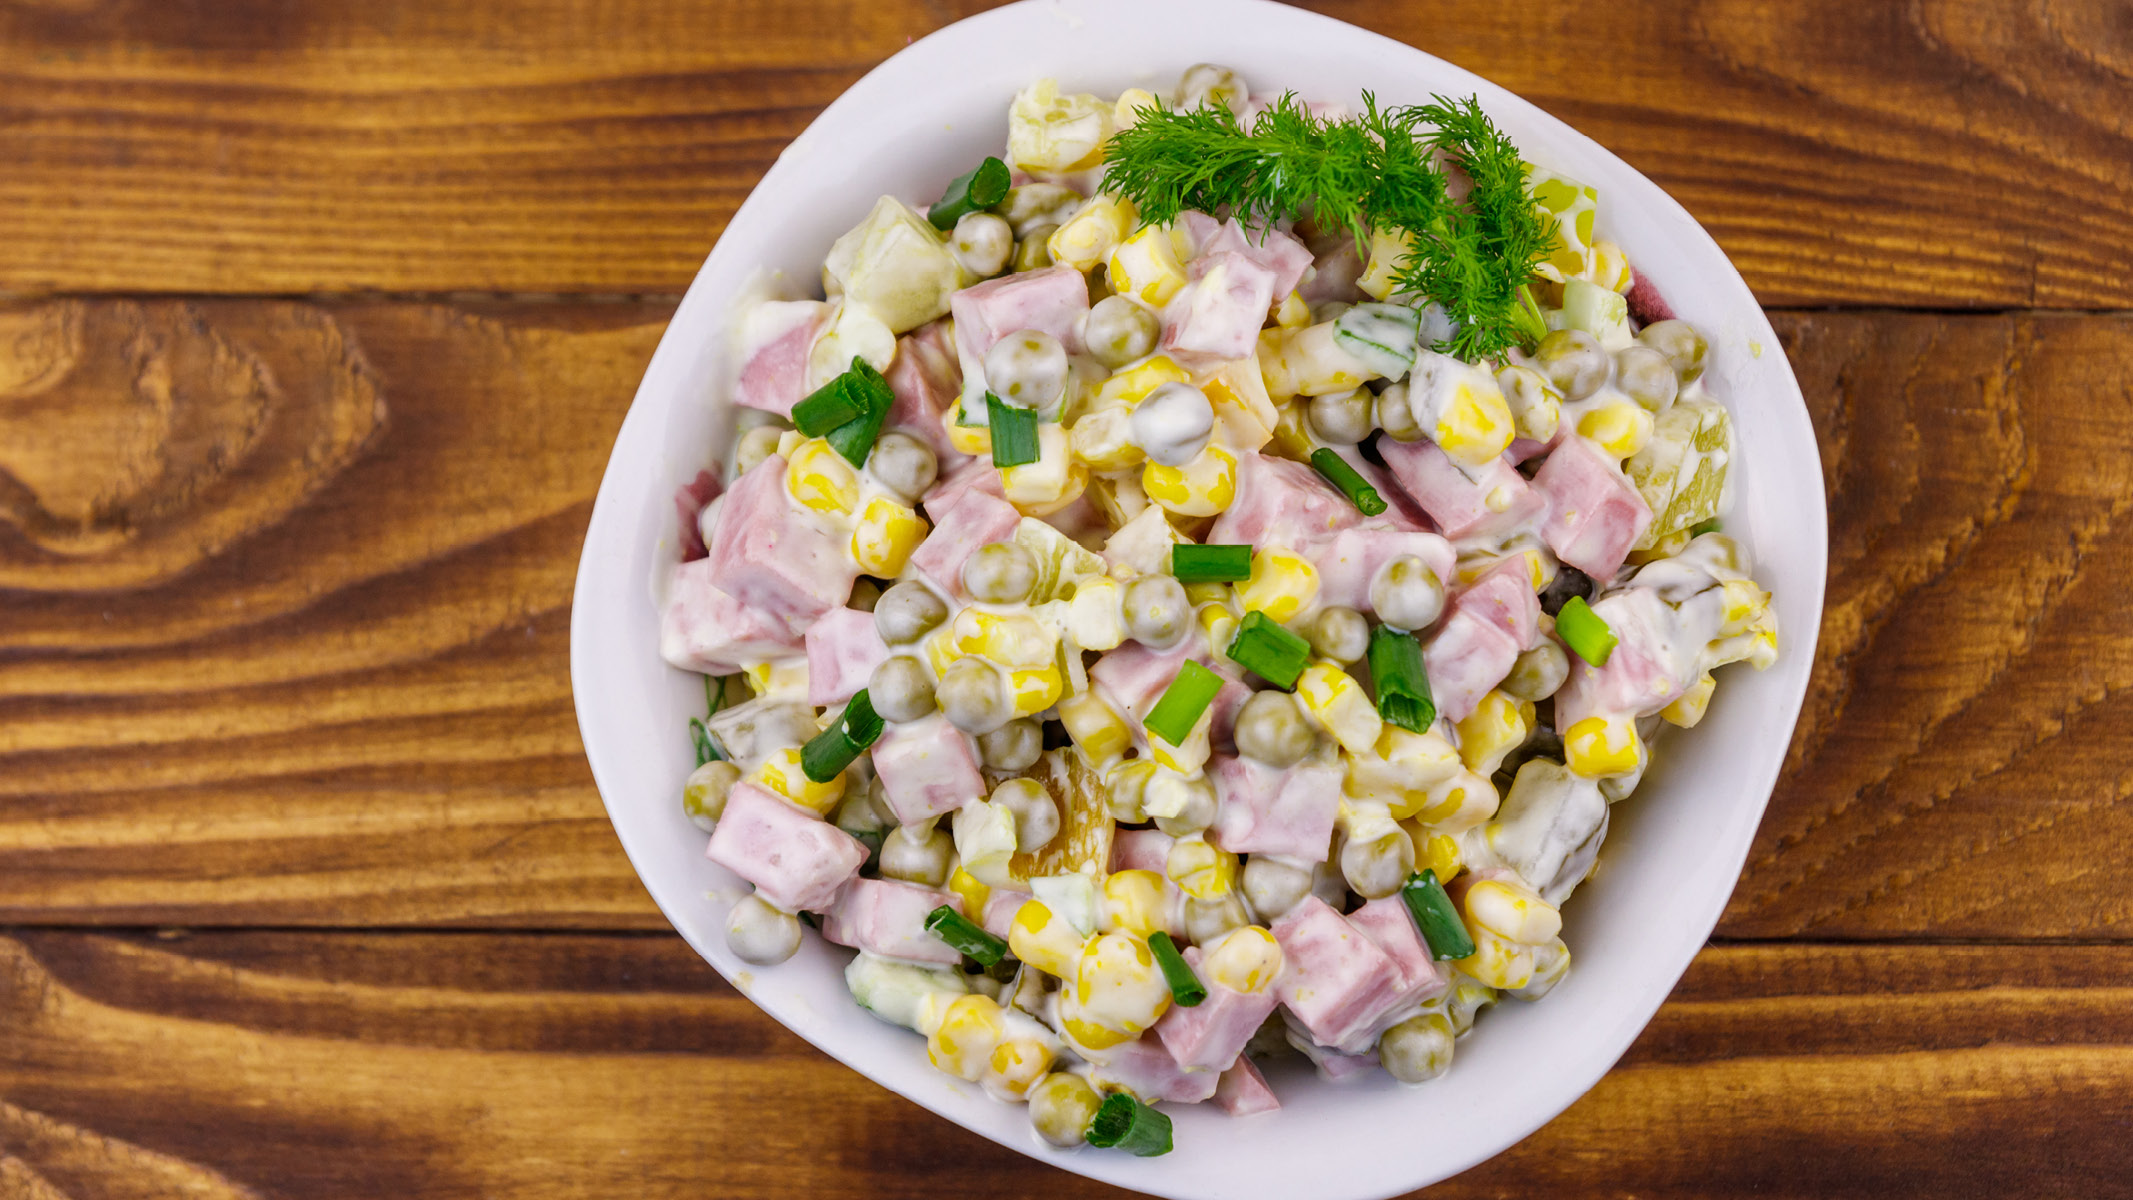 Bowl of ham and corn salad - Sanford fit